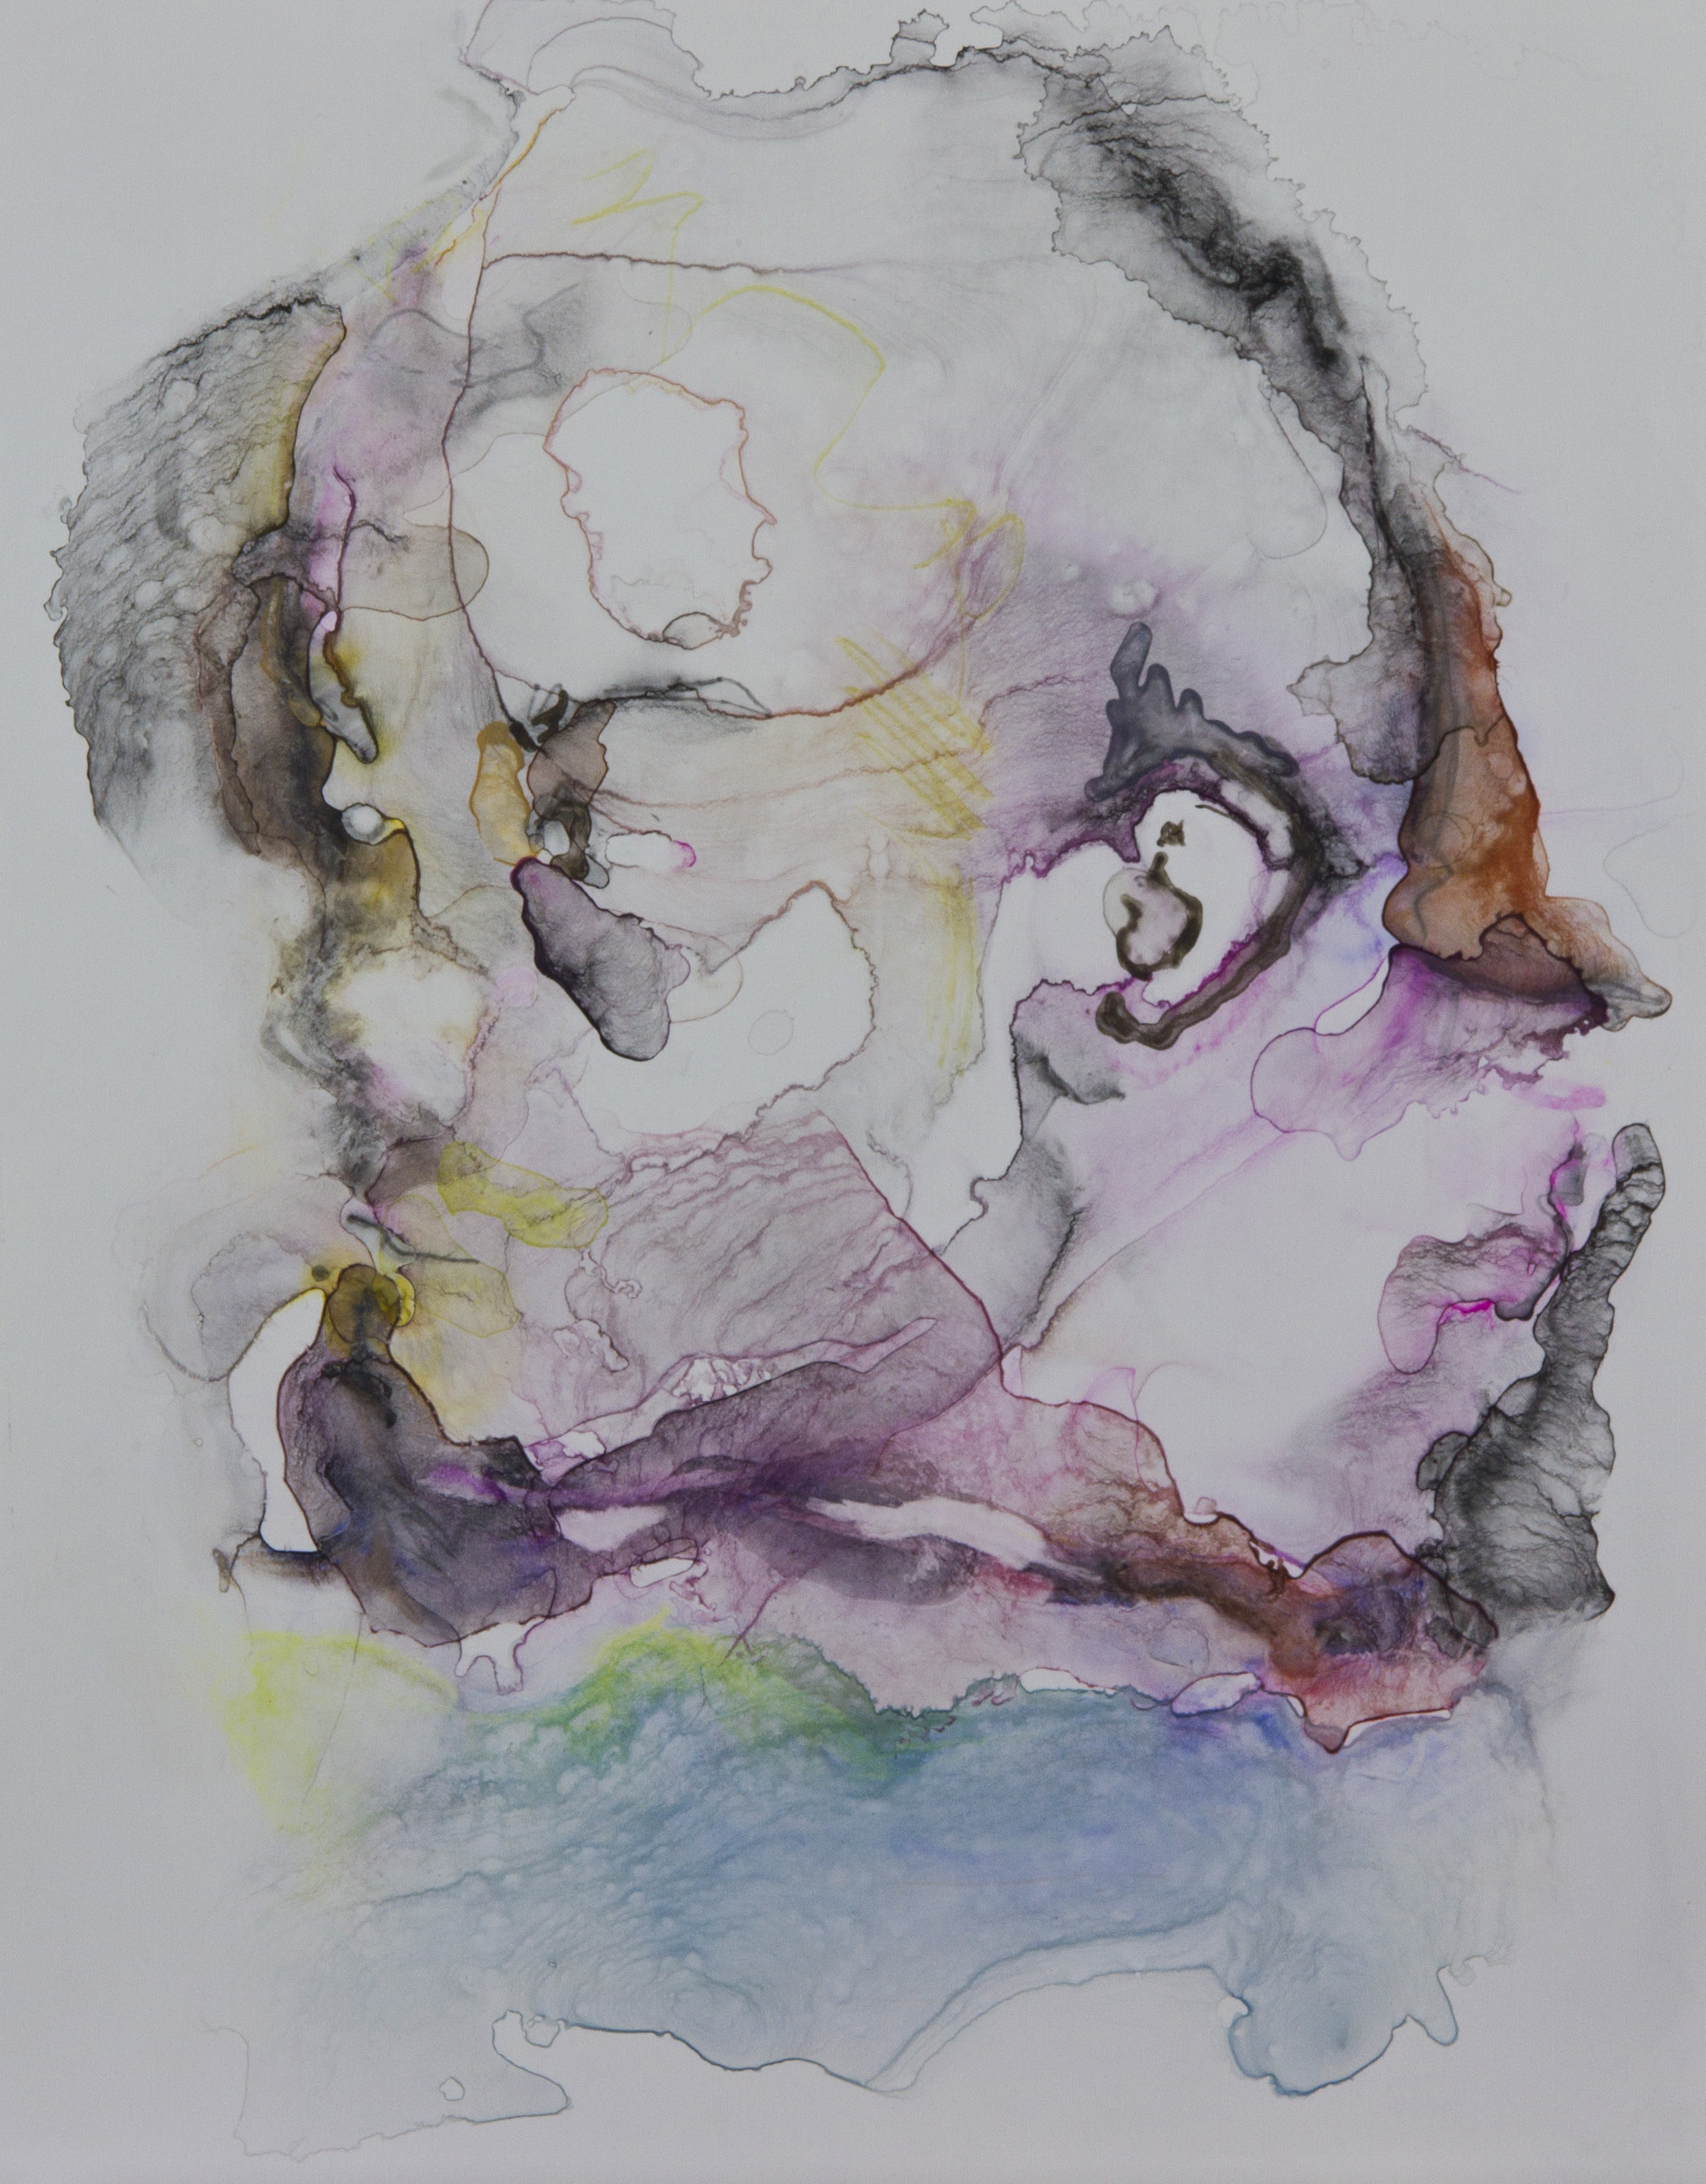 Specimen 11, 2011, watercolor on polypropylene, 11x14 inches